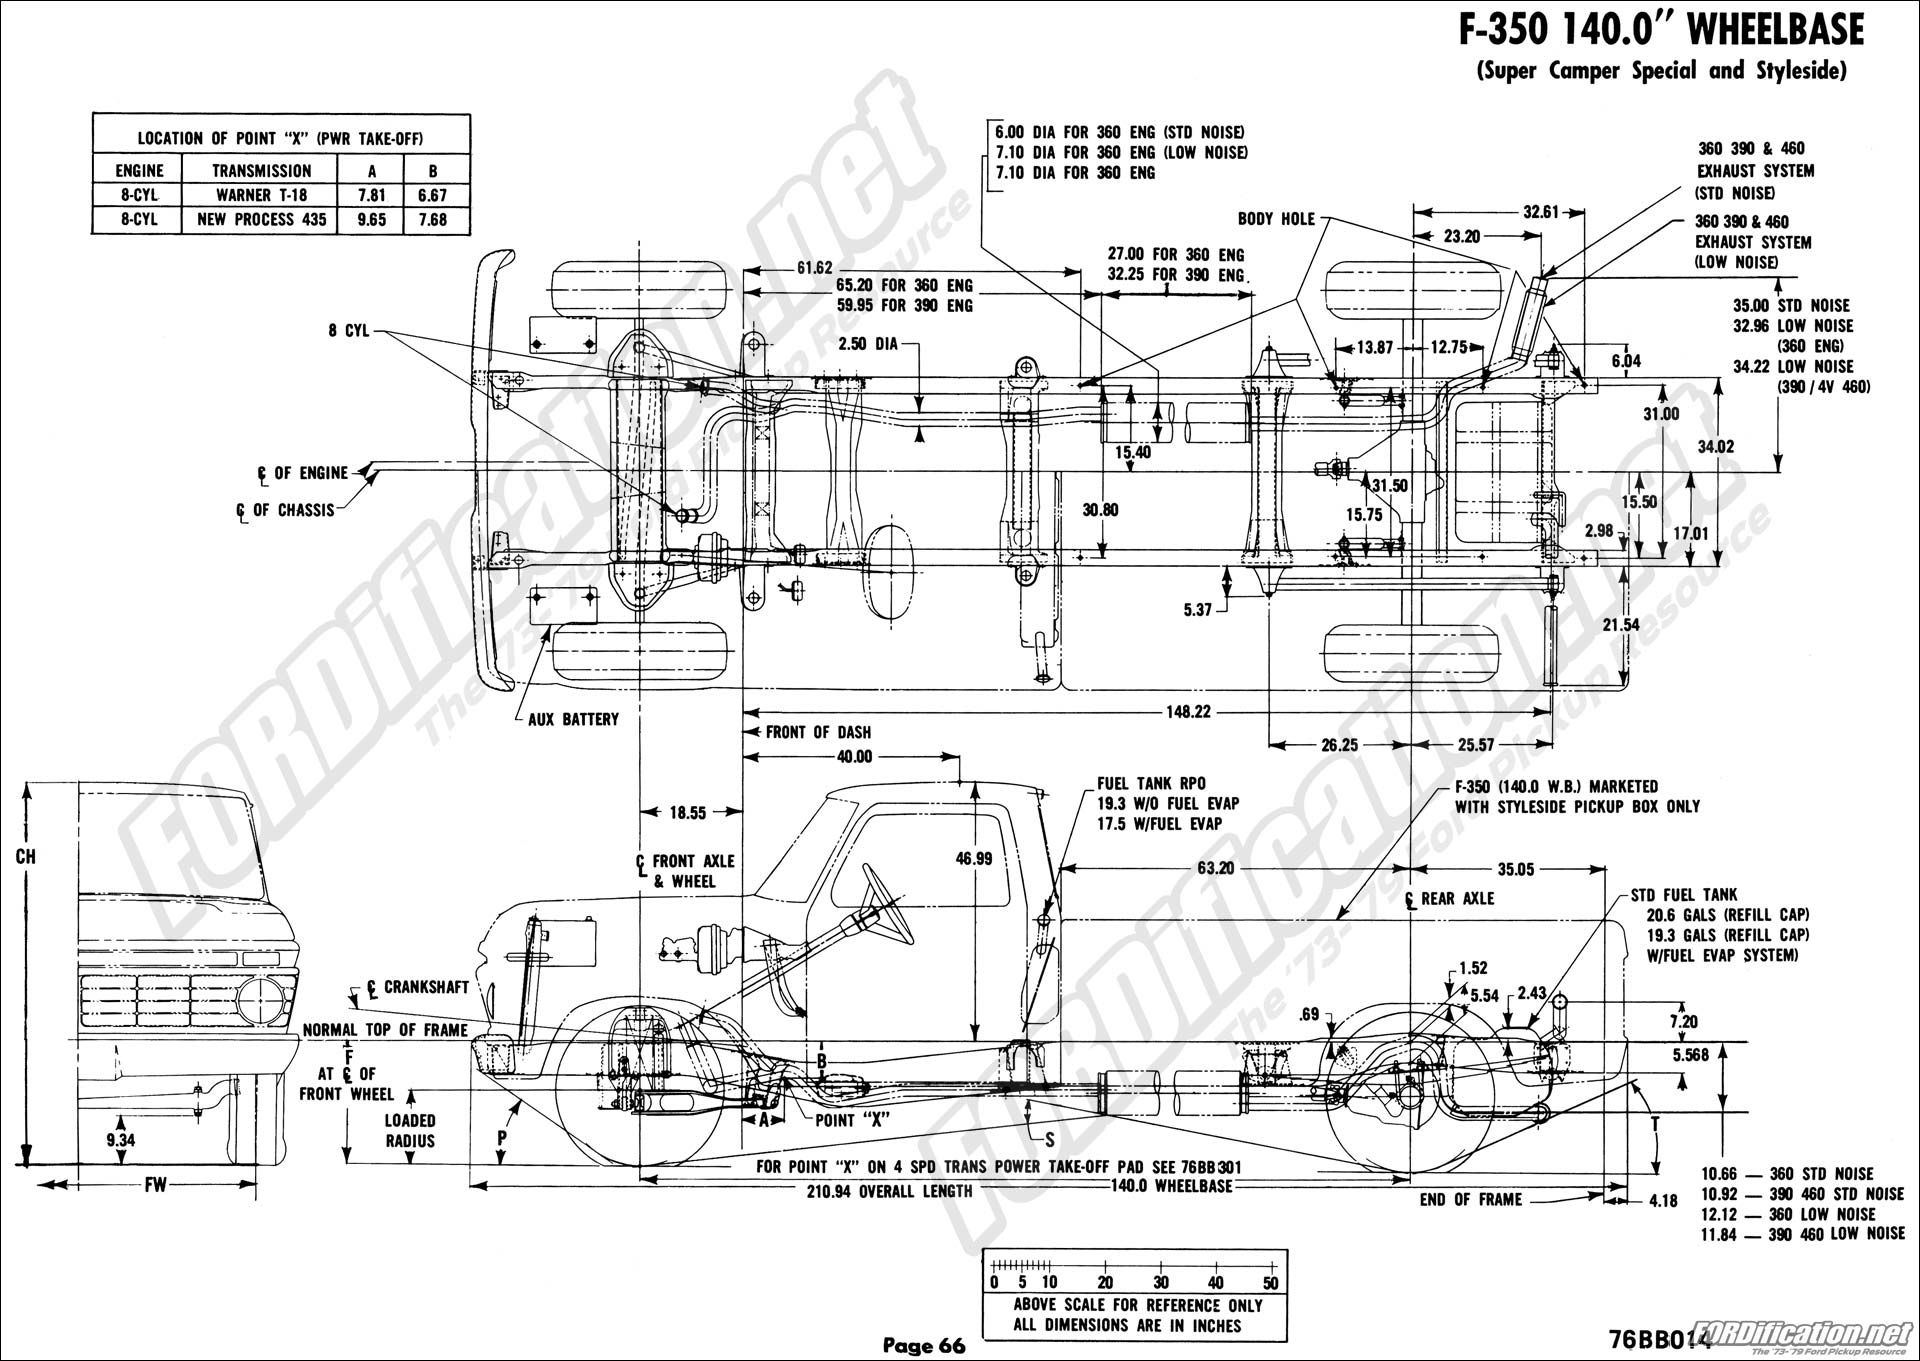 05 crown vic fuse box wiring diagram database Ford Truck Steering Column Parts wiring diagram for 1966 ford truck best wiring library crown vic steering shaft 01 page 02